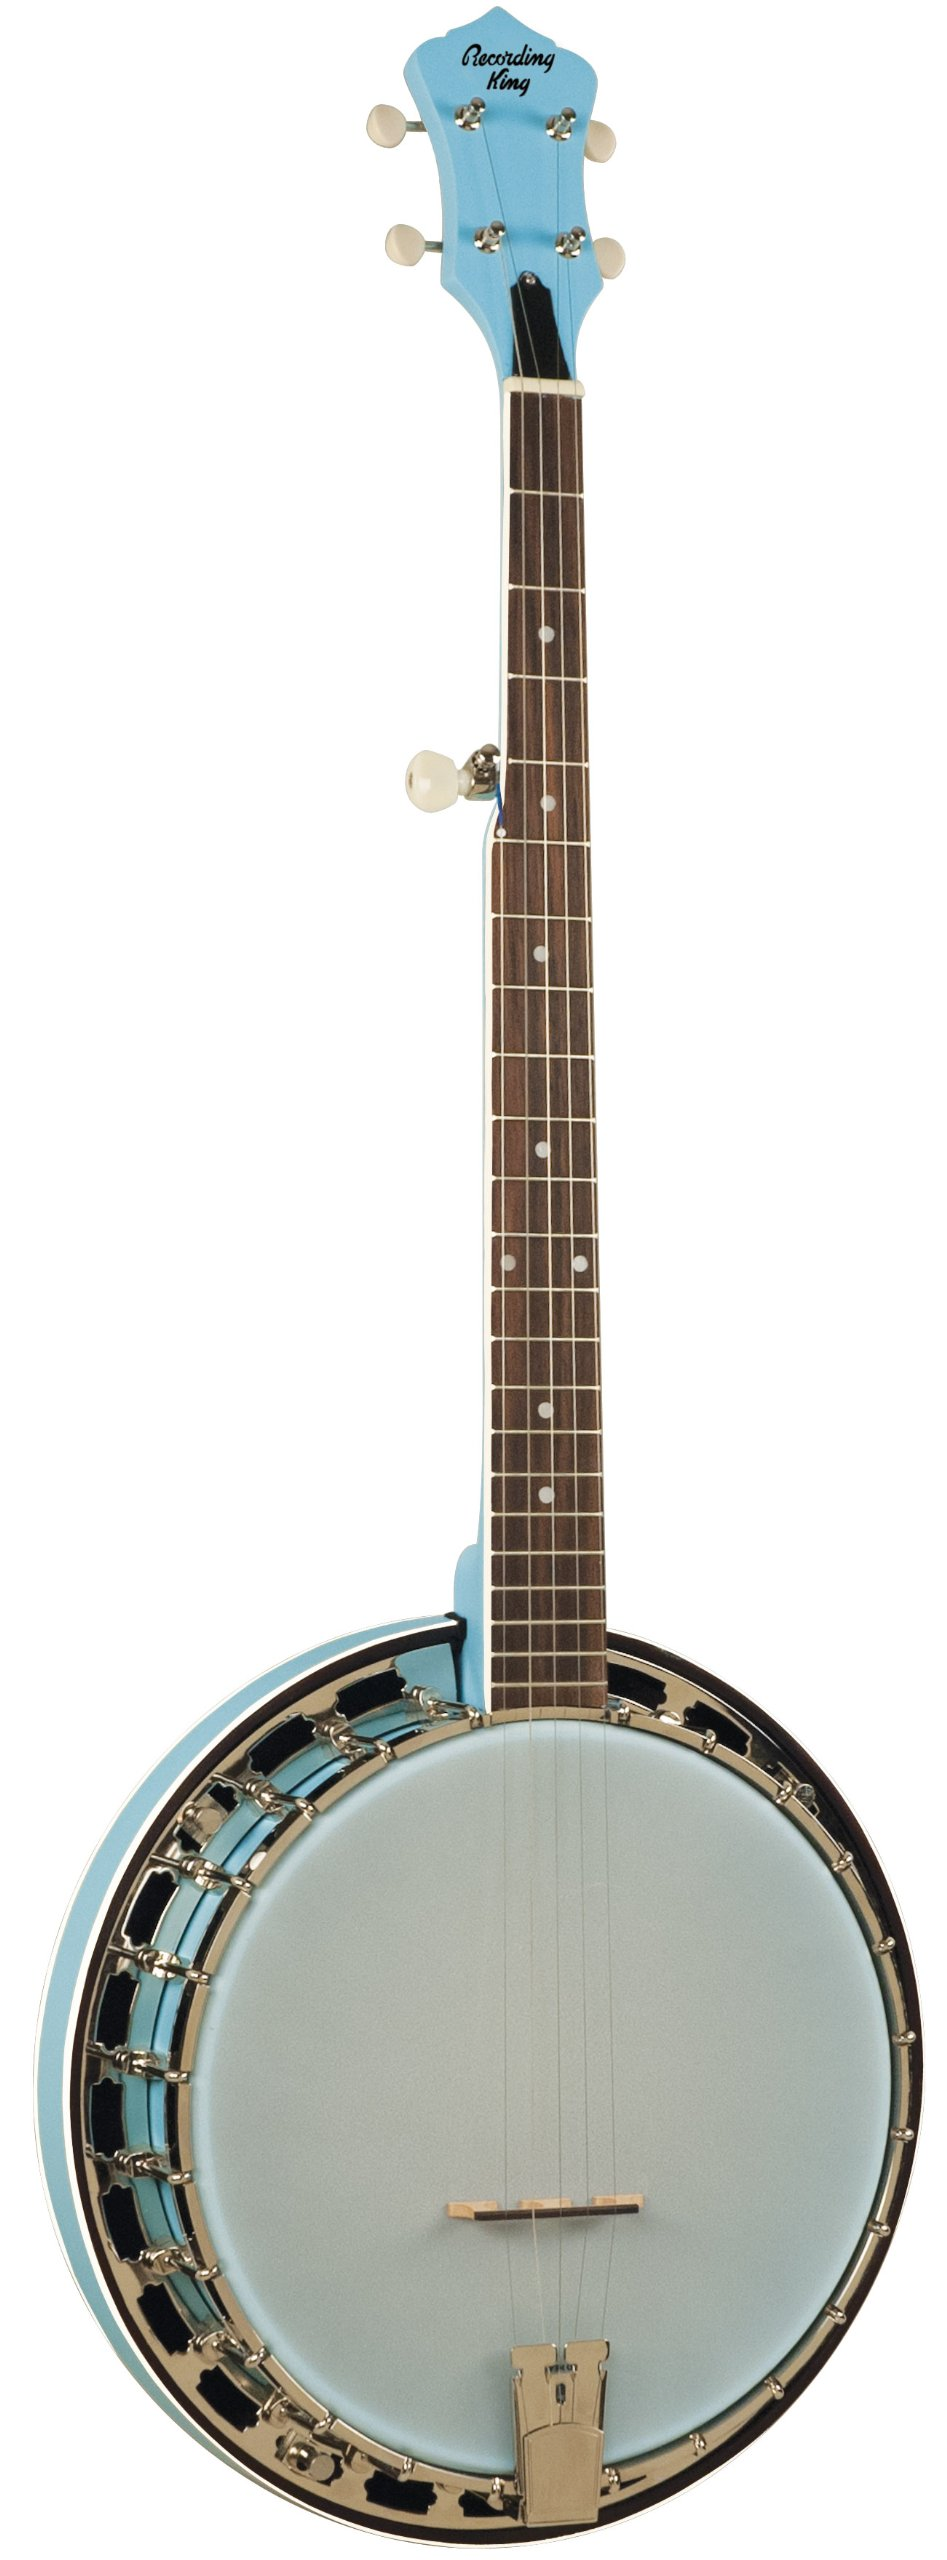 Recording King RKS-06-LBL Starlight Series Resonator Banjo, Sky